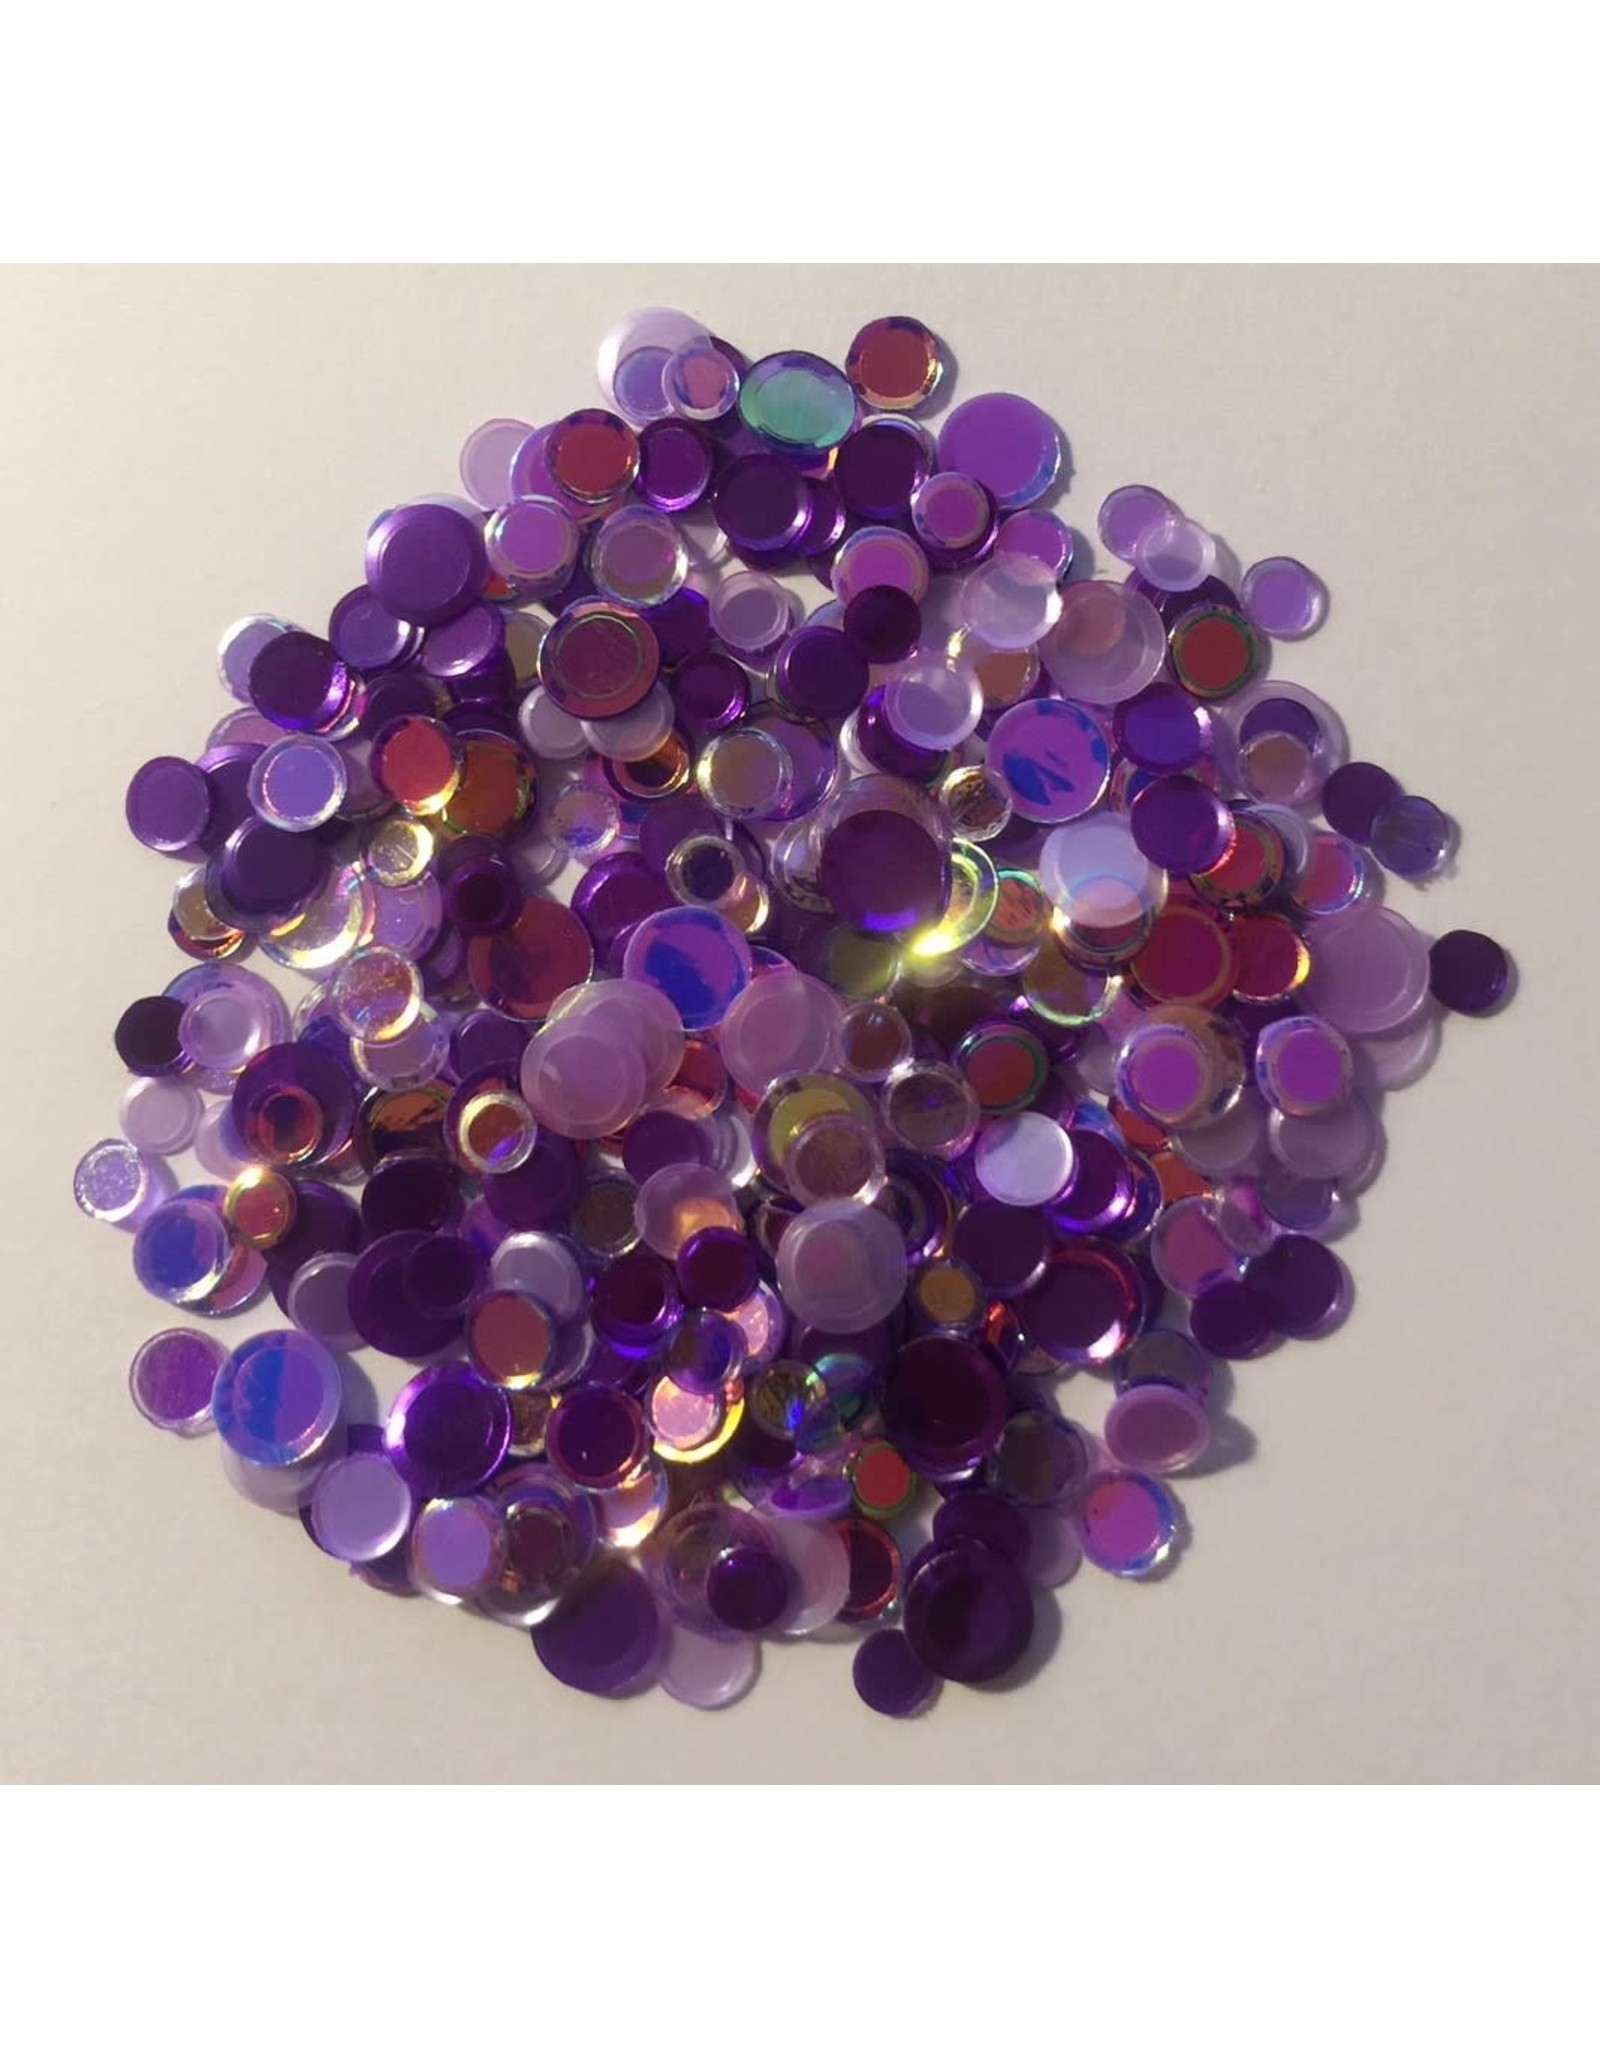 Paws-Itively Pawsome Designs Shaker Confetti - Purple Passion